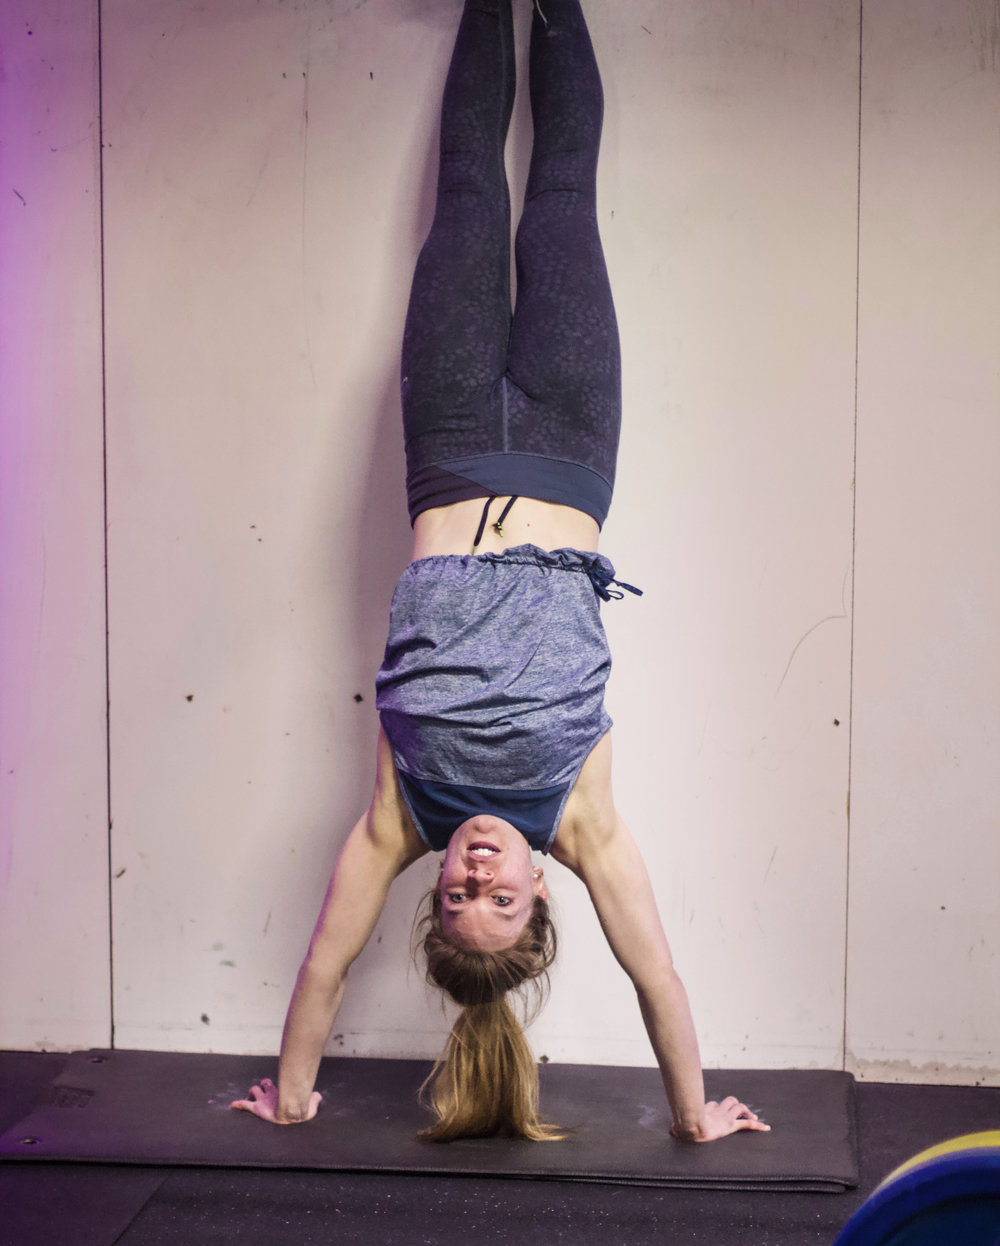 Nate is one workout that will turn you upside down! Here's PVCF athlete, Katie Byrne showing us how it's done:)